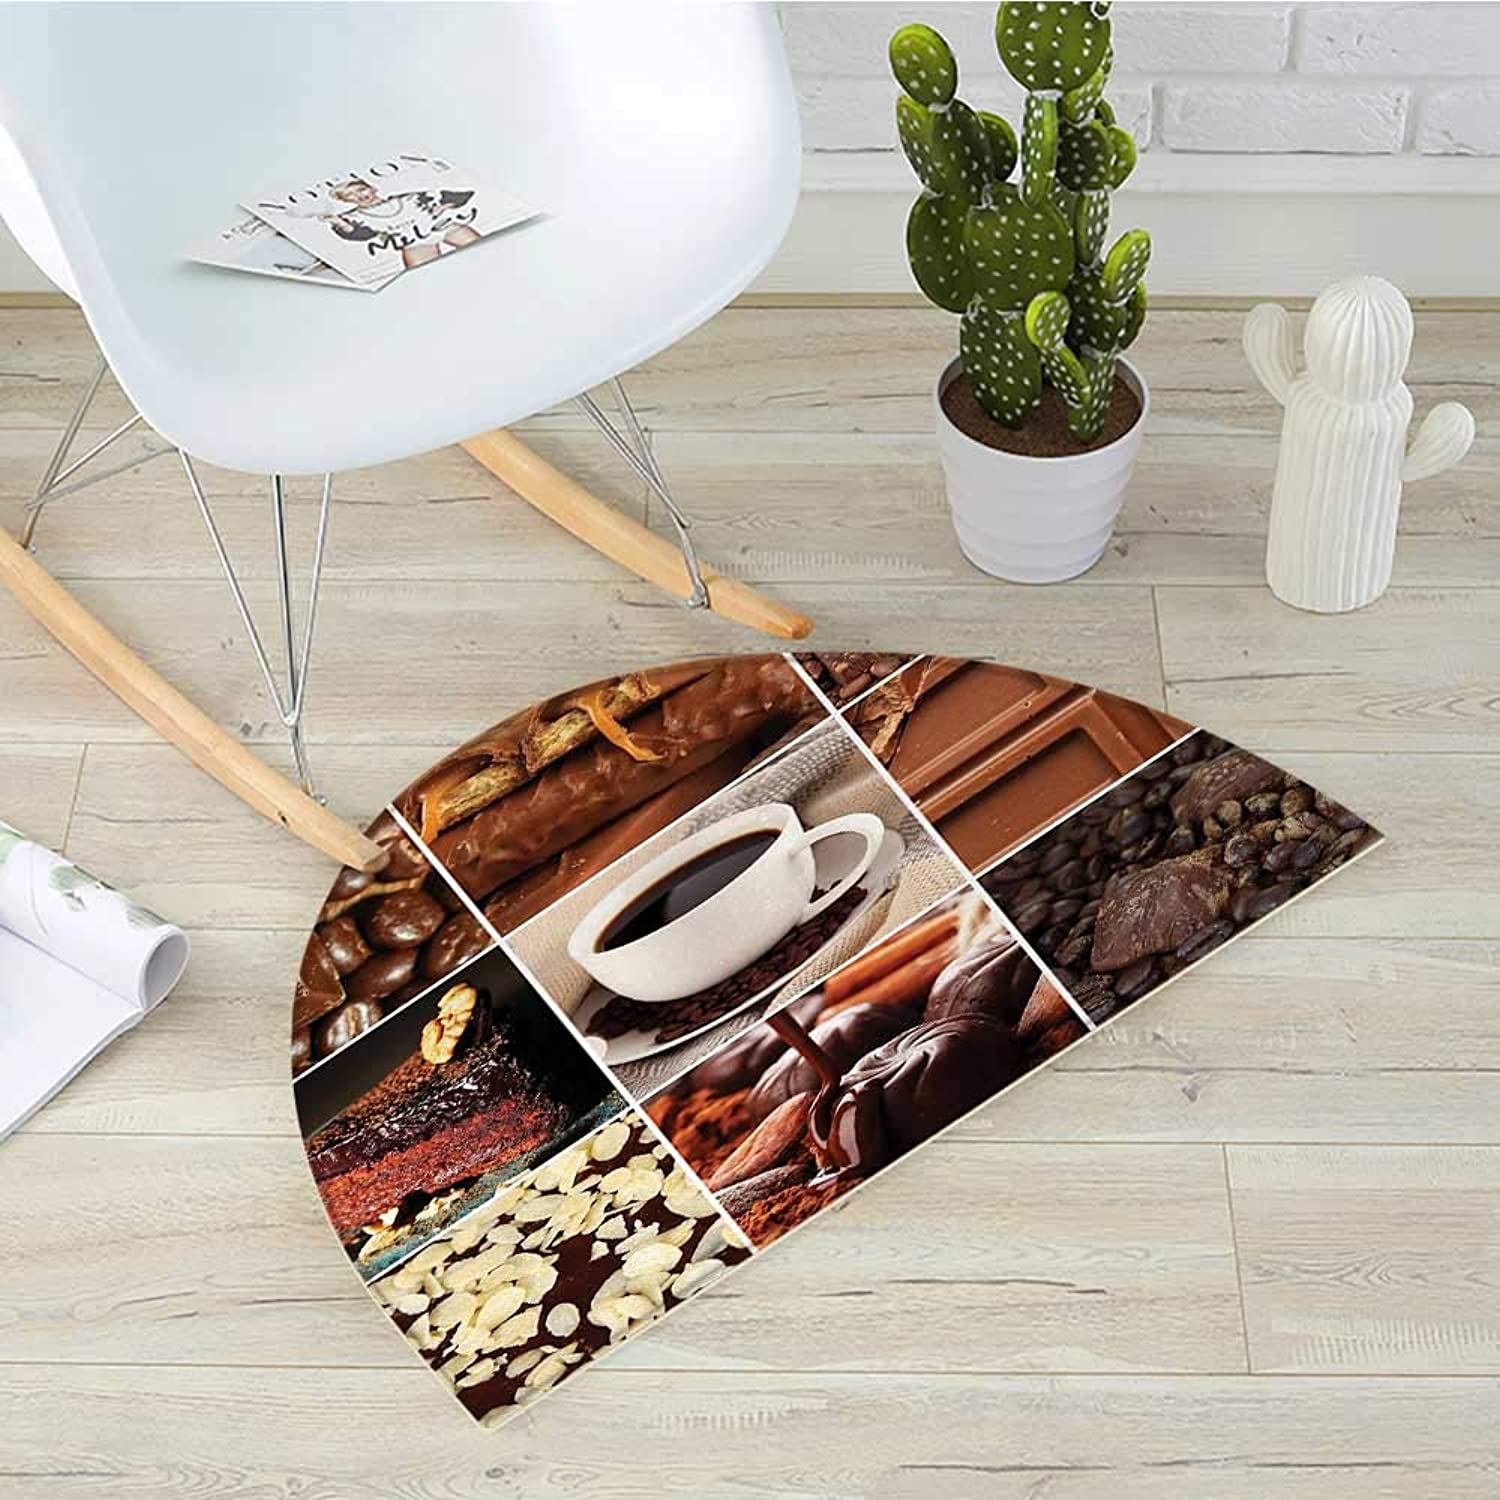 Brown Semicircle Doormat Coffee and Chocolate Tasty Collage Beans Mugs Snacks Pastries Espresso Cocoa Composition Halfmoon doormats H 39.3  xD 59  Brown